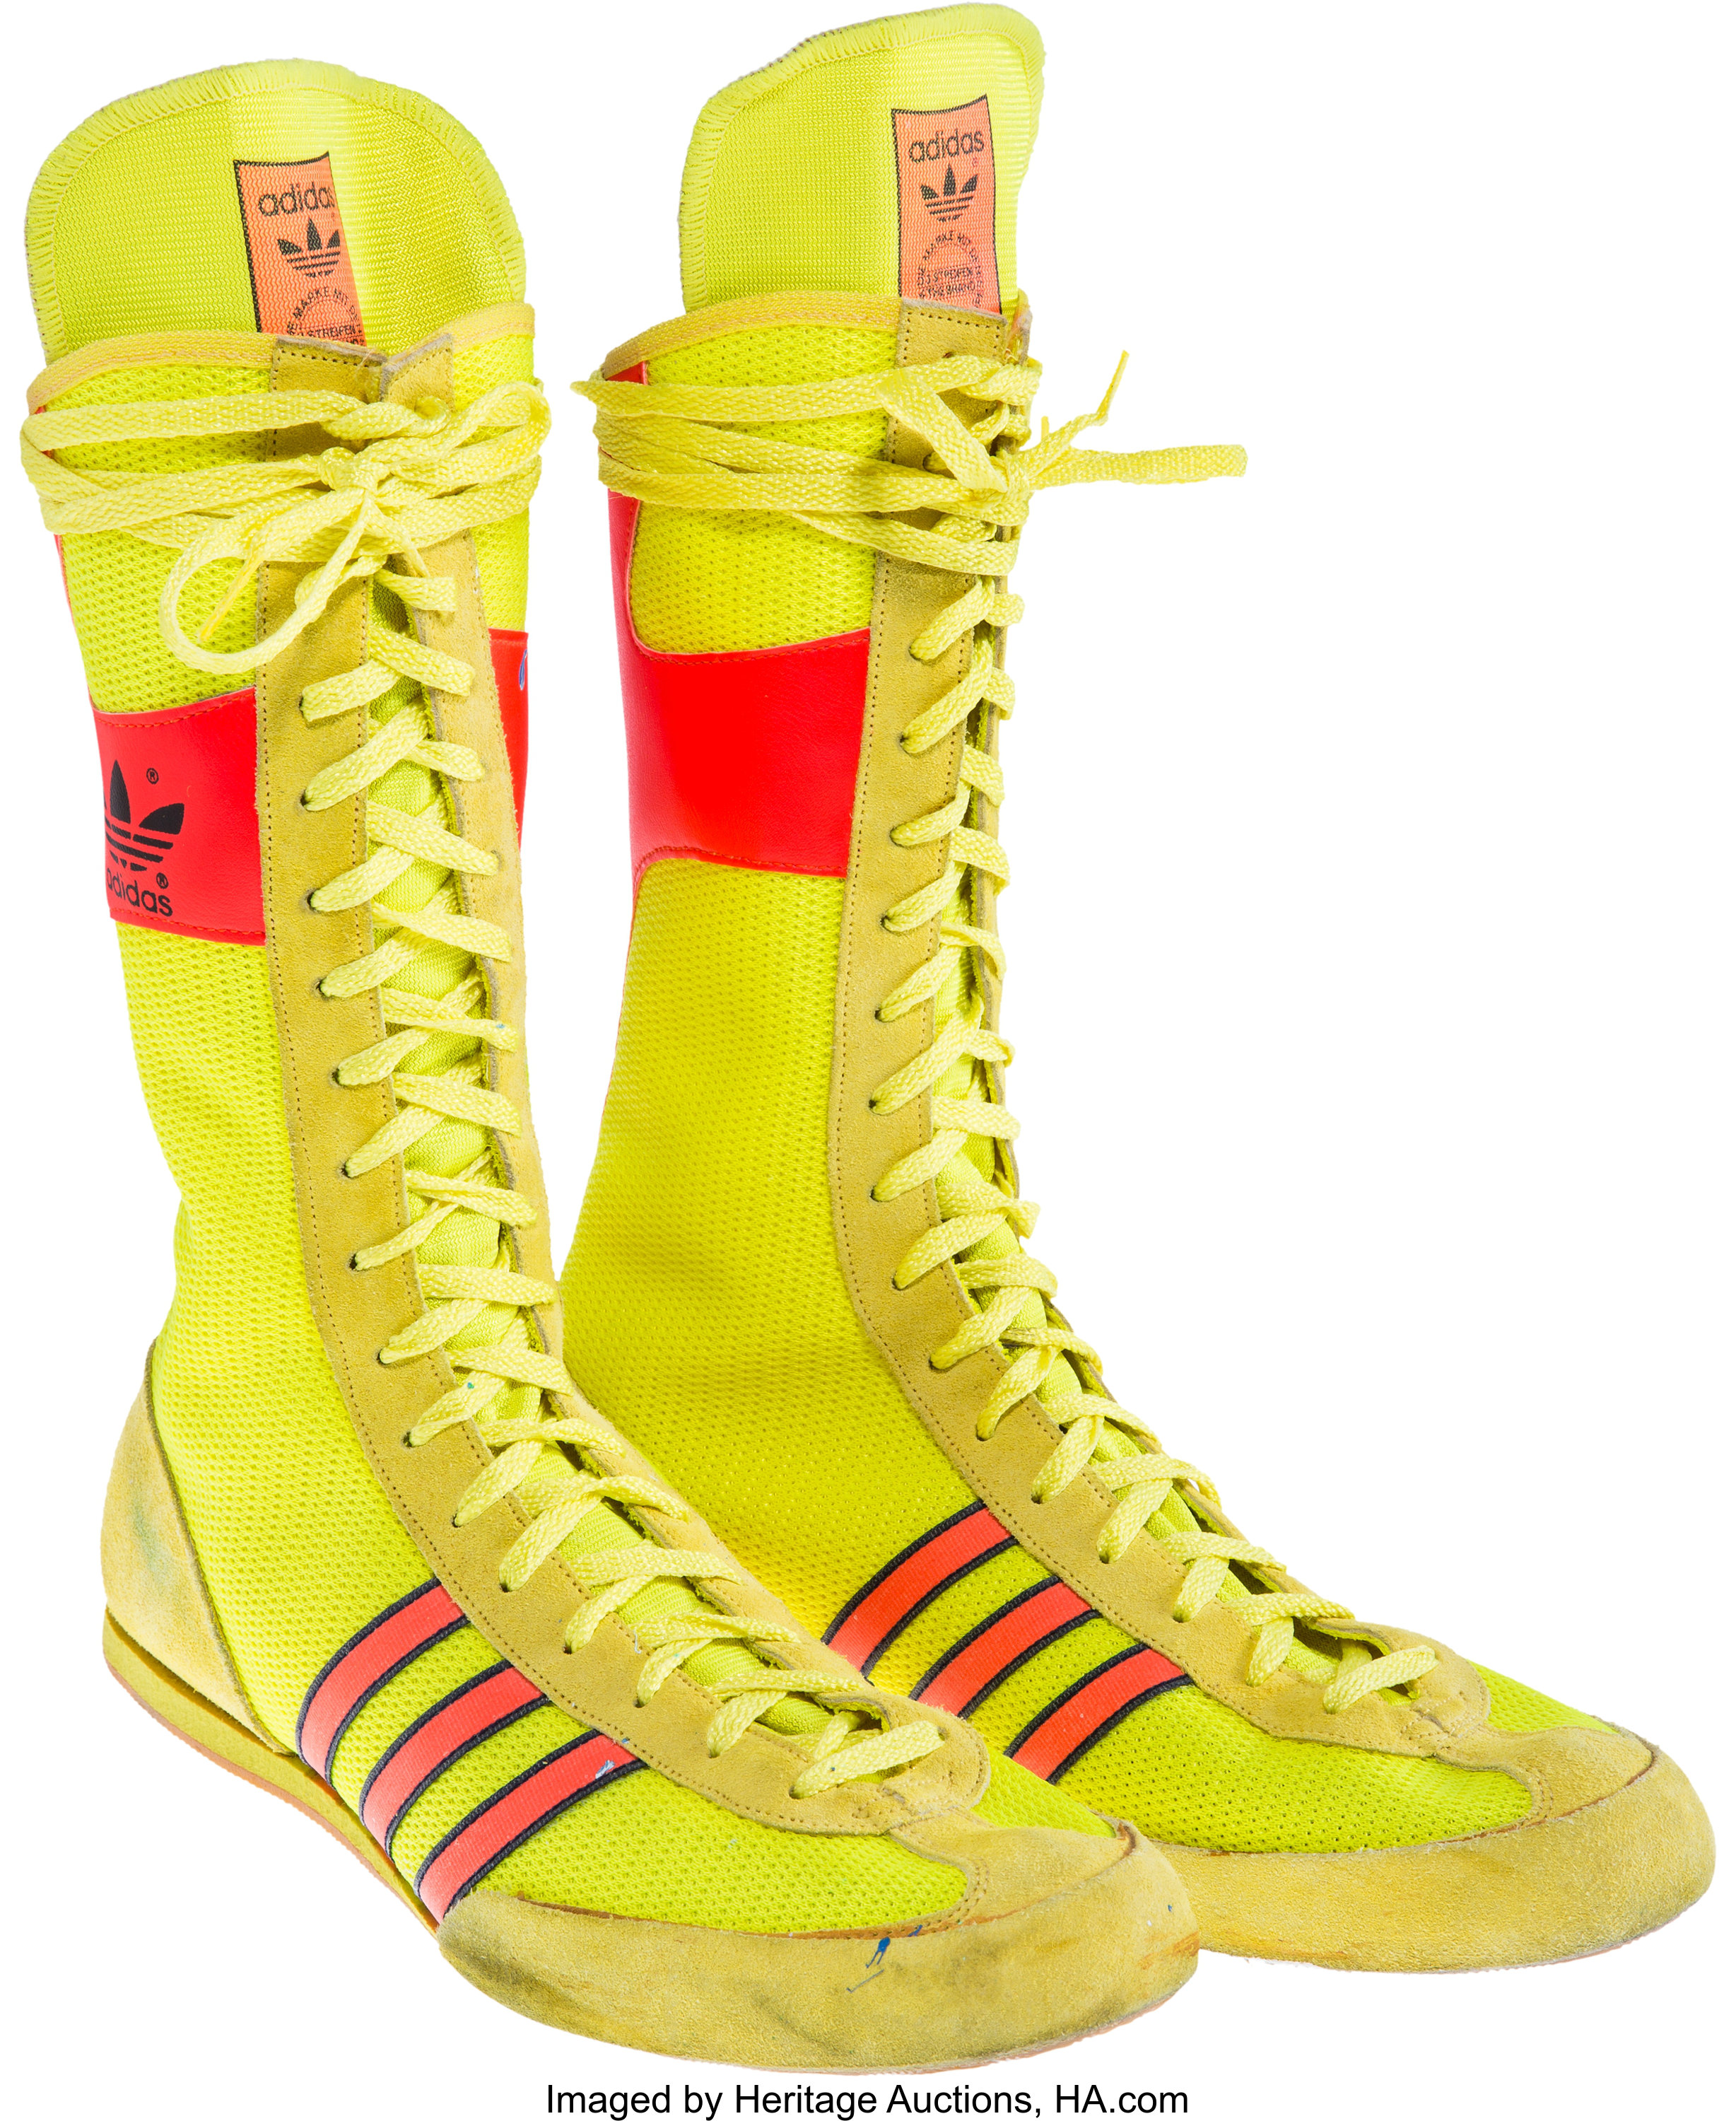 A Pair of Boxing Shoes Related to